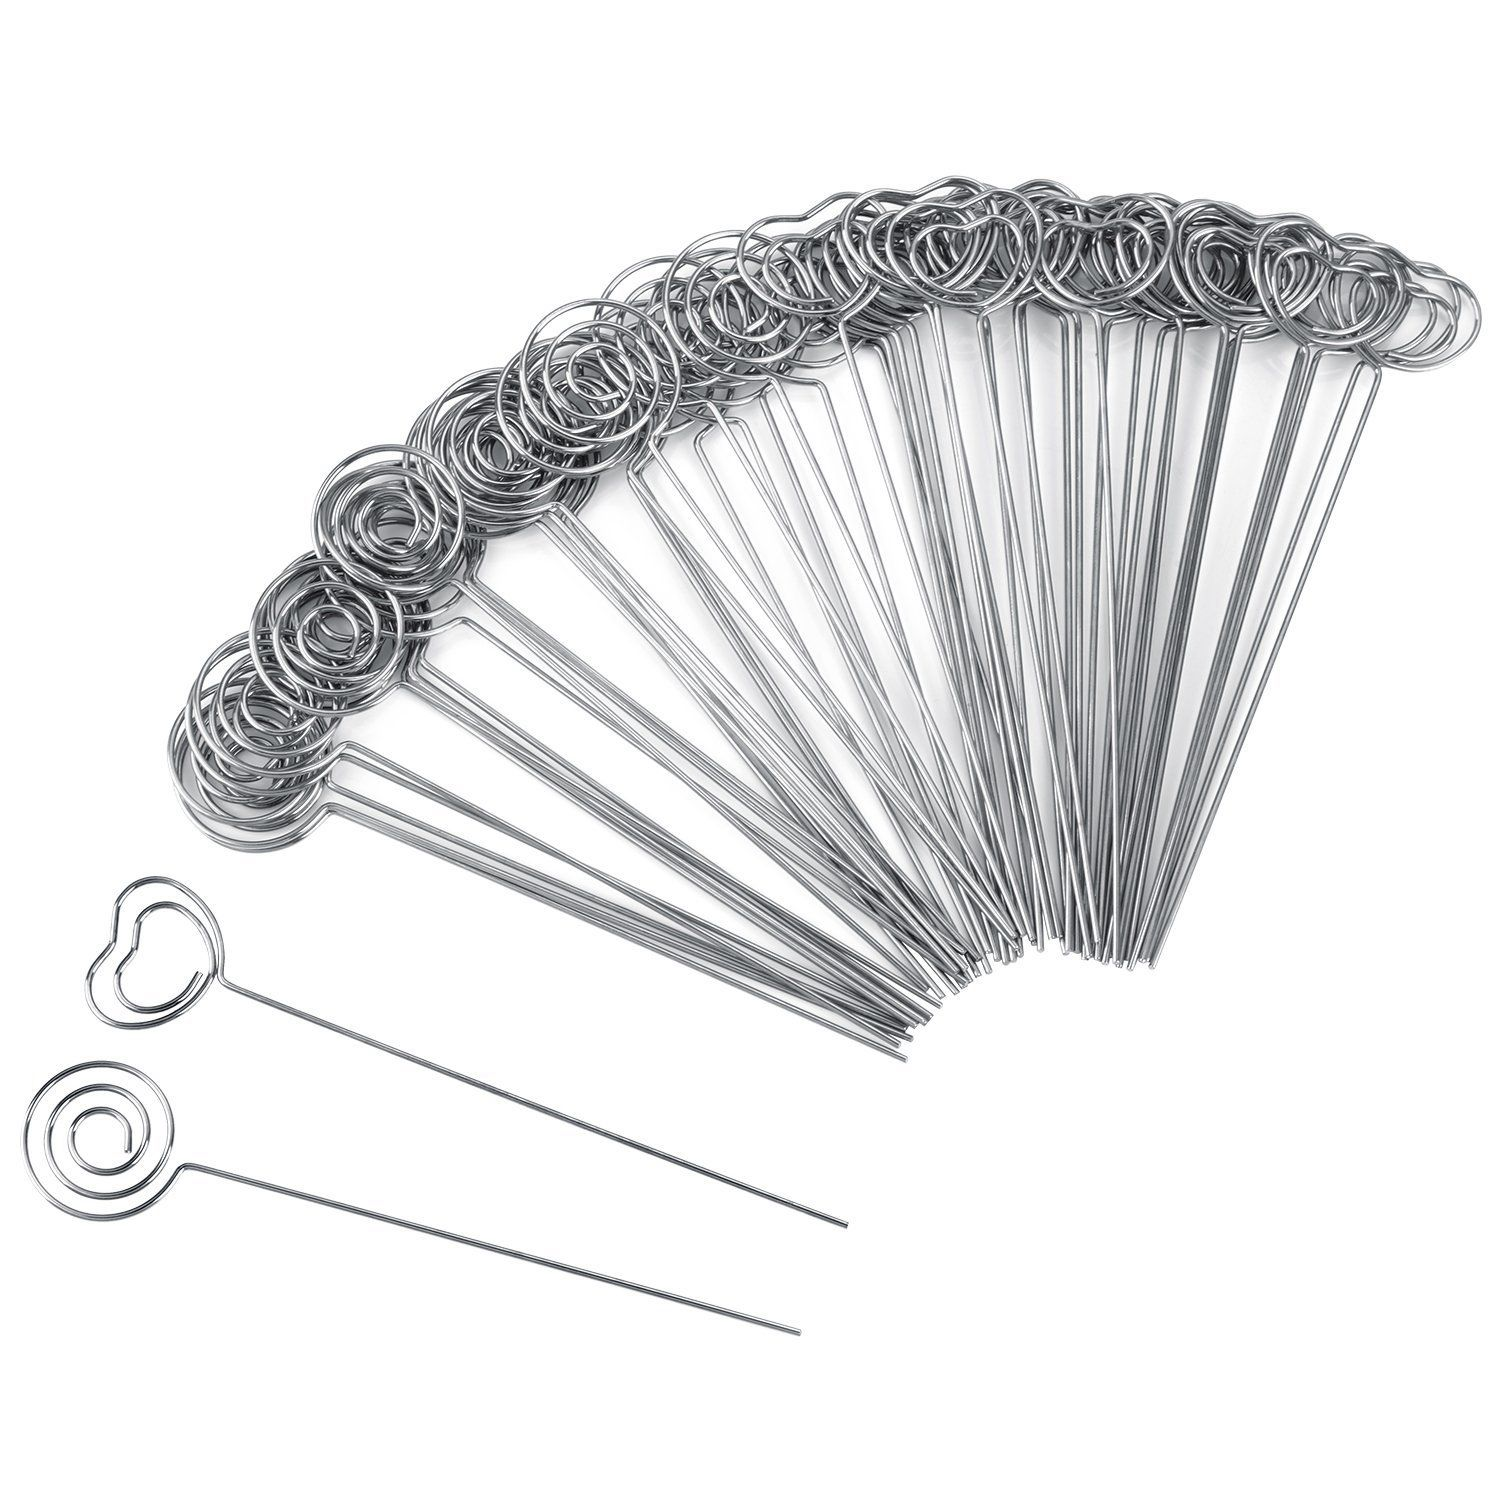 60 Pieces Metal Wires Memo Clip Note Card Holders Table Number Clip Photo Stand for Wedding Party Cake Decor, Round and Heart60 Pieces Metal Wires Memo Clip Note Card Holders Table Number Clip Photo Stand for Wedding Party Cake Decor, Round and Heart